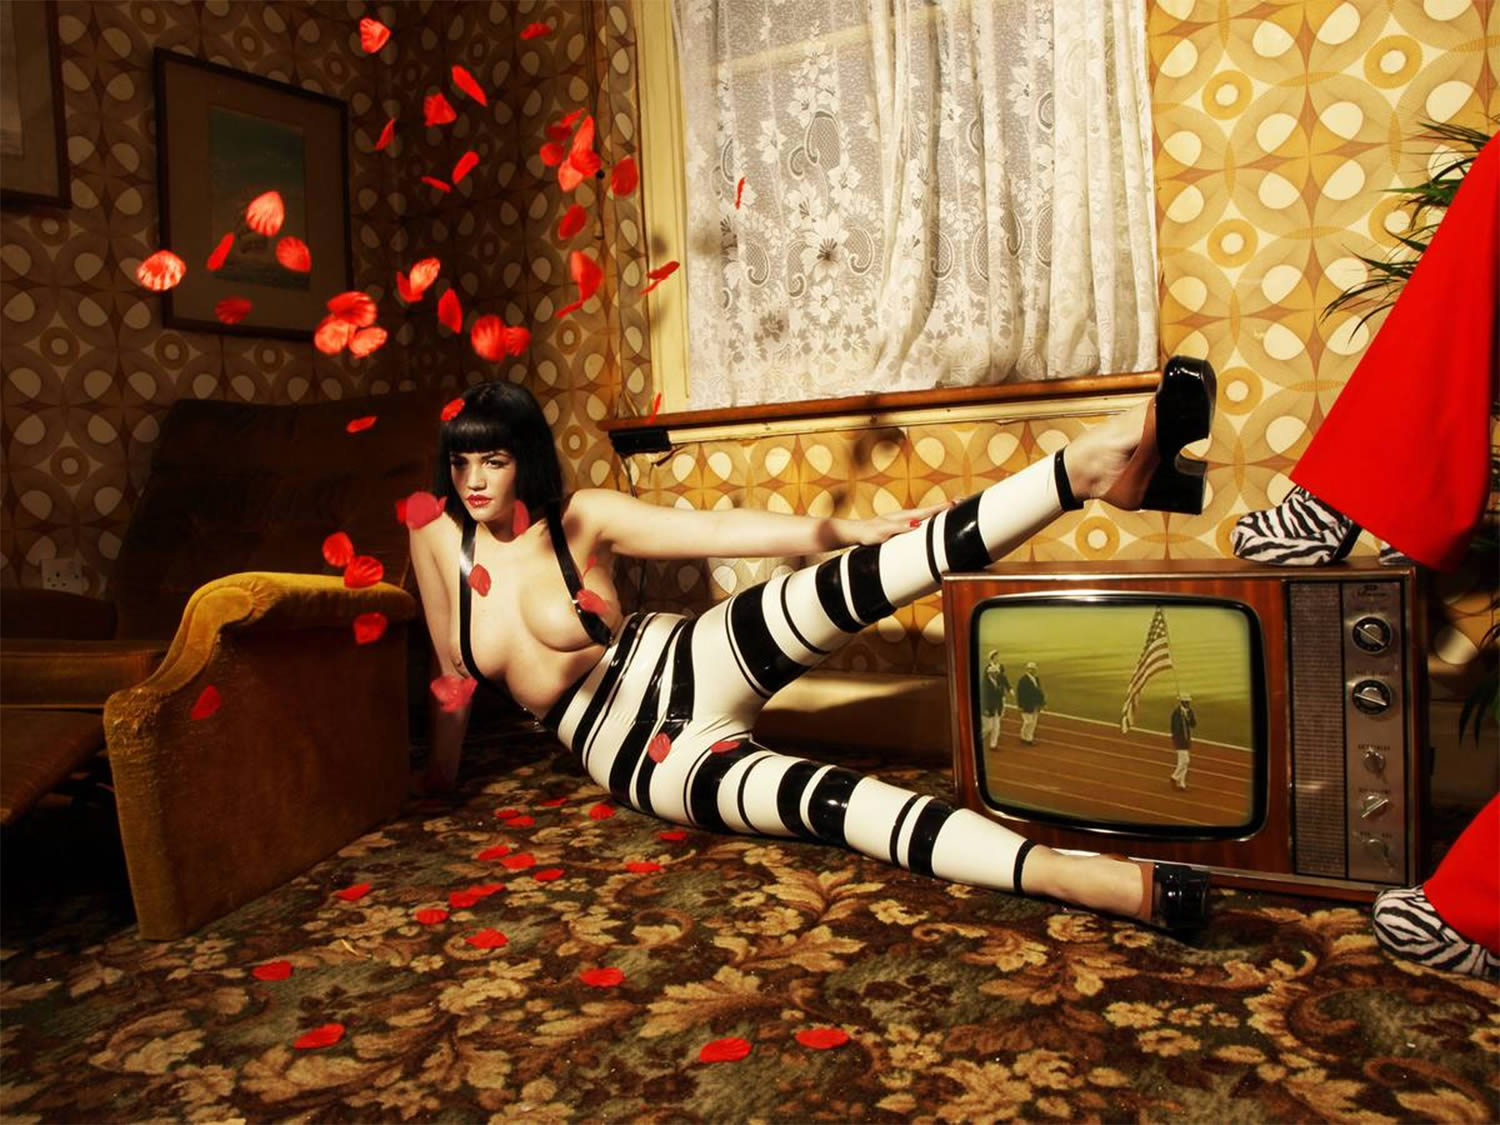 woman with striped paints in living room, by nadia lee cohen